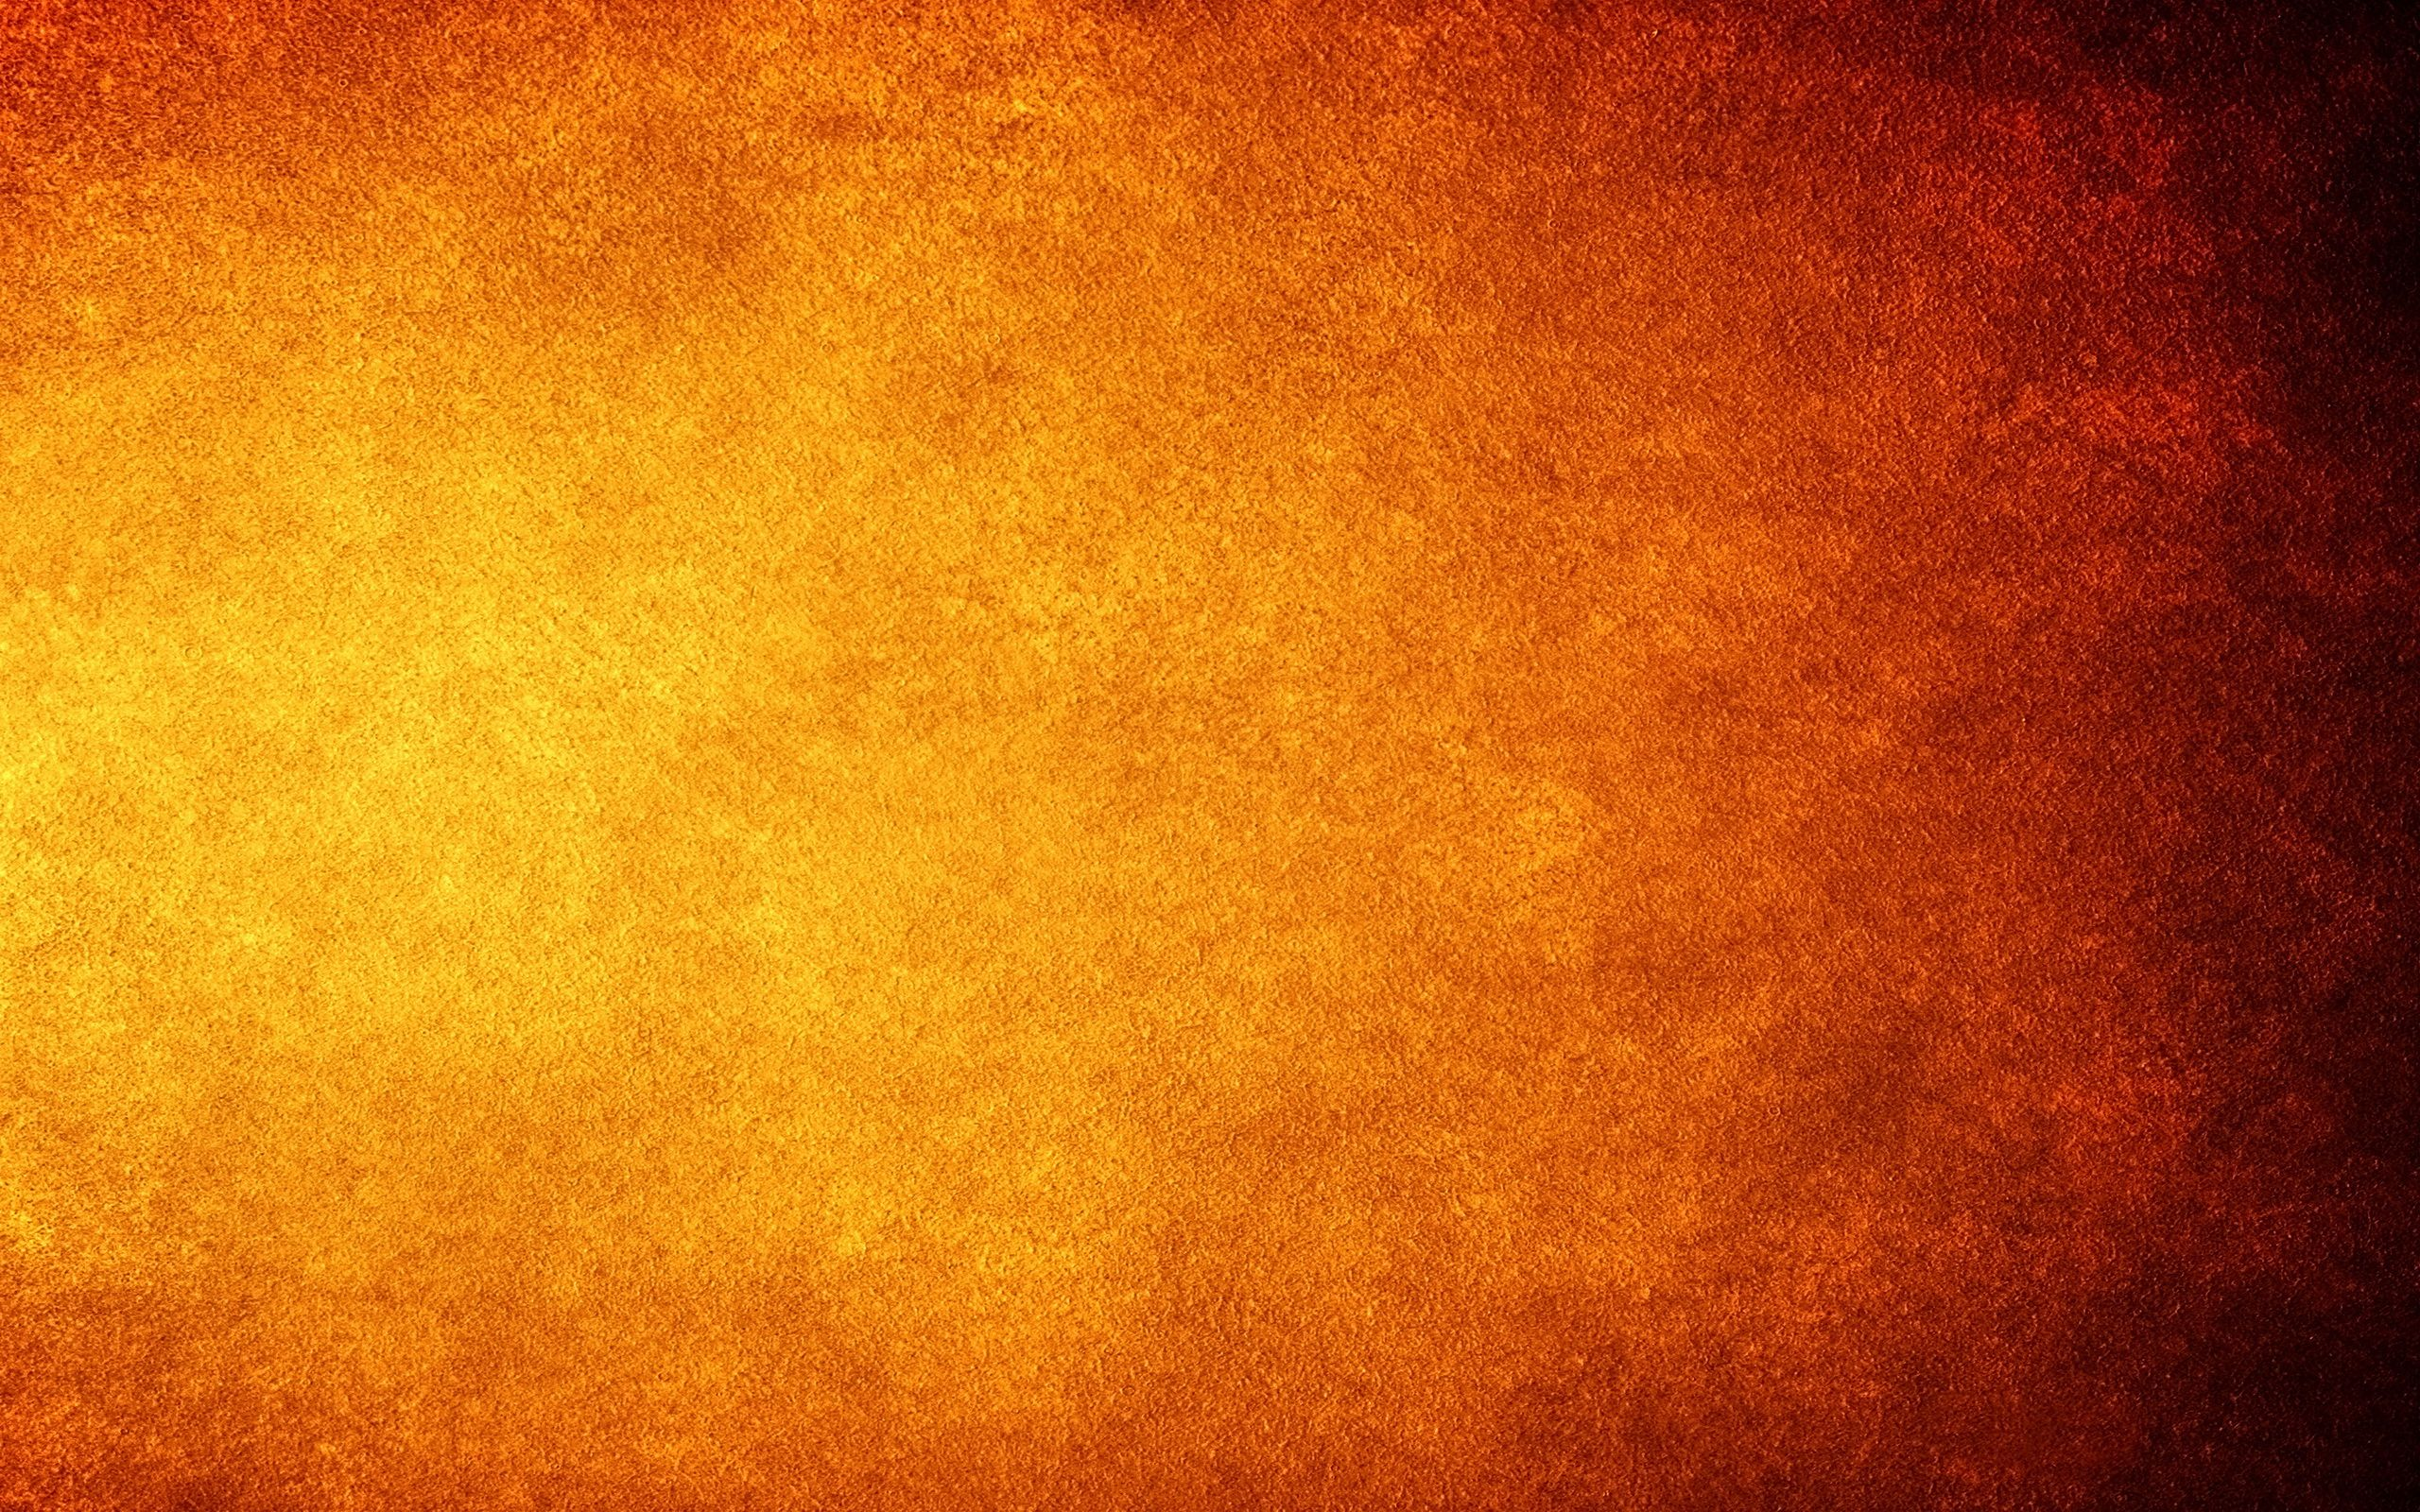 orange background   Google Search Backgrounds in 2019 Orange 2560x1600